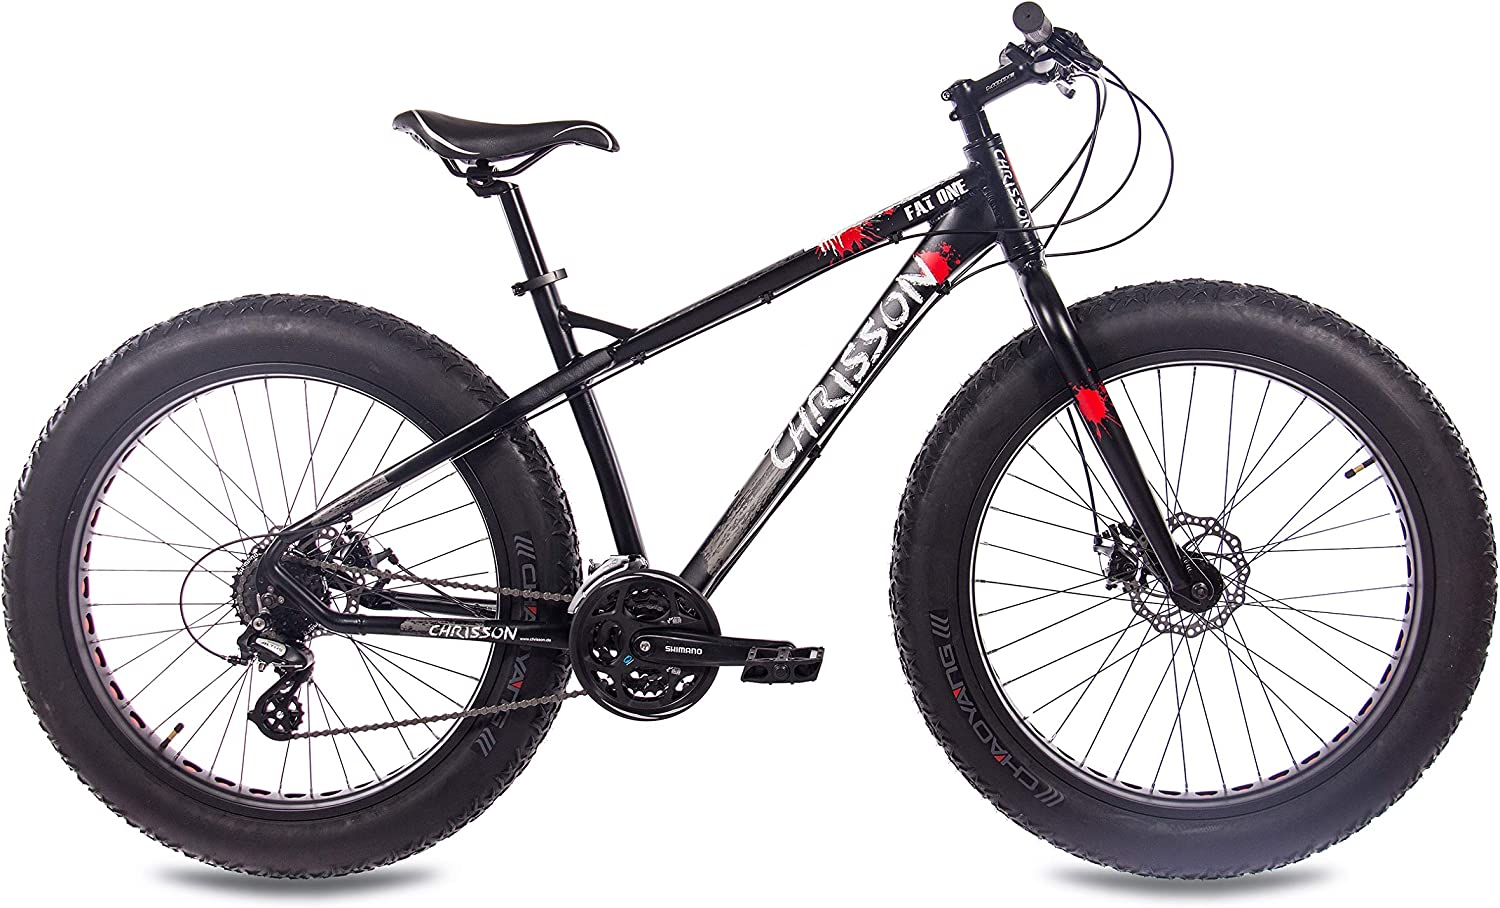 26 pulgadas Fat Bike Mountain Bike Bicicleta CHRISSON Fat One con ...